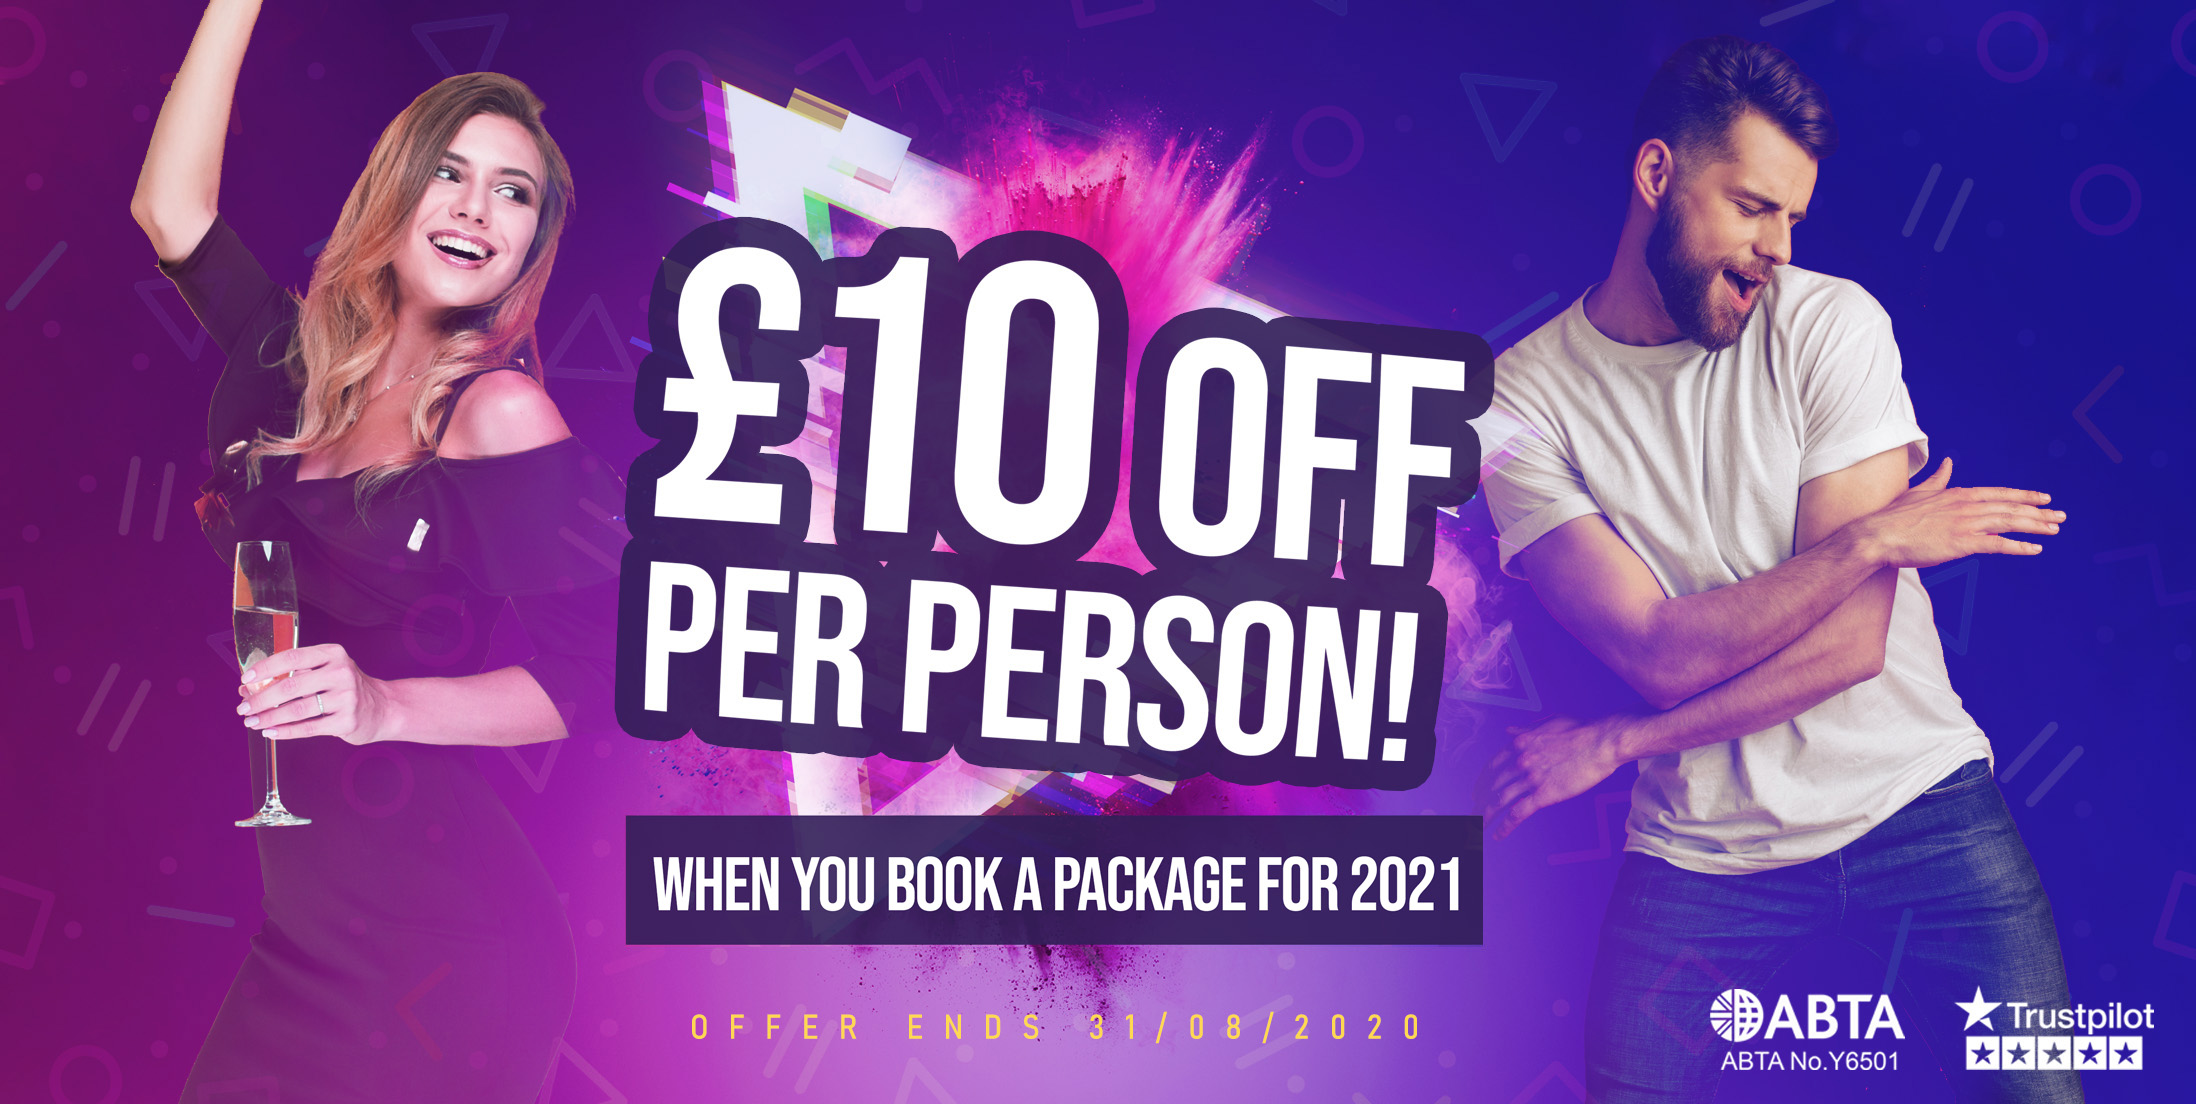 £10 OFF Per Person for 2021 Special Offer